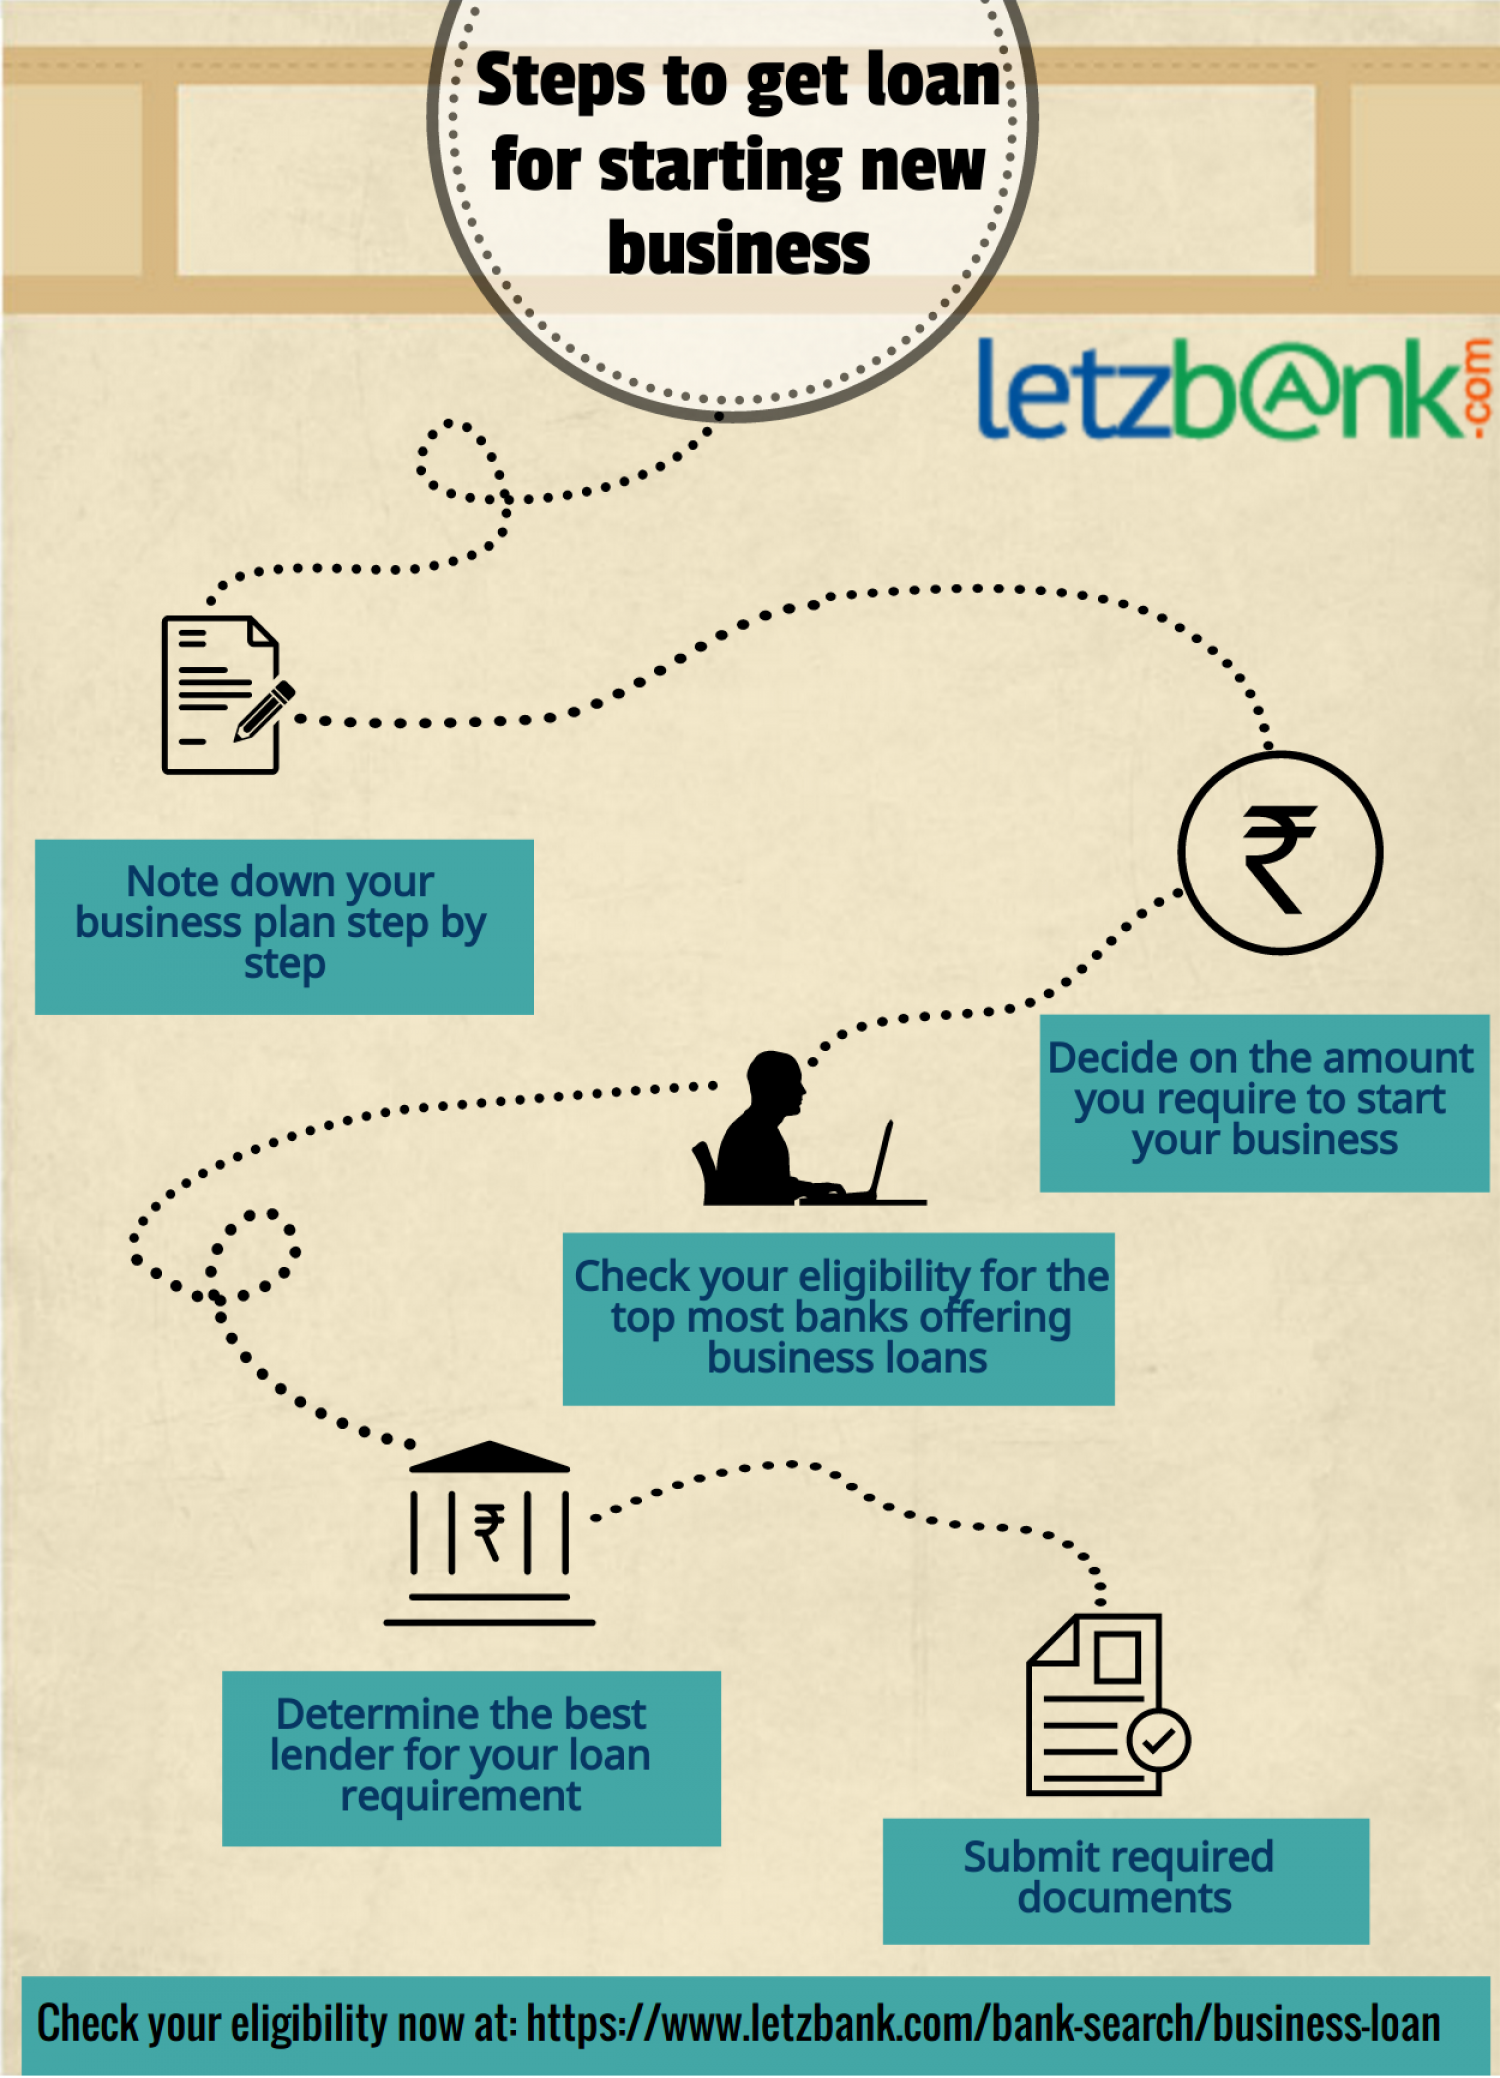 Steps to get loan for your startup business   Letzbank Infographic